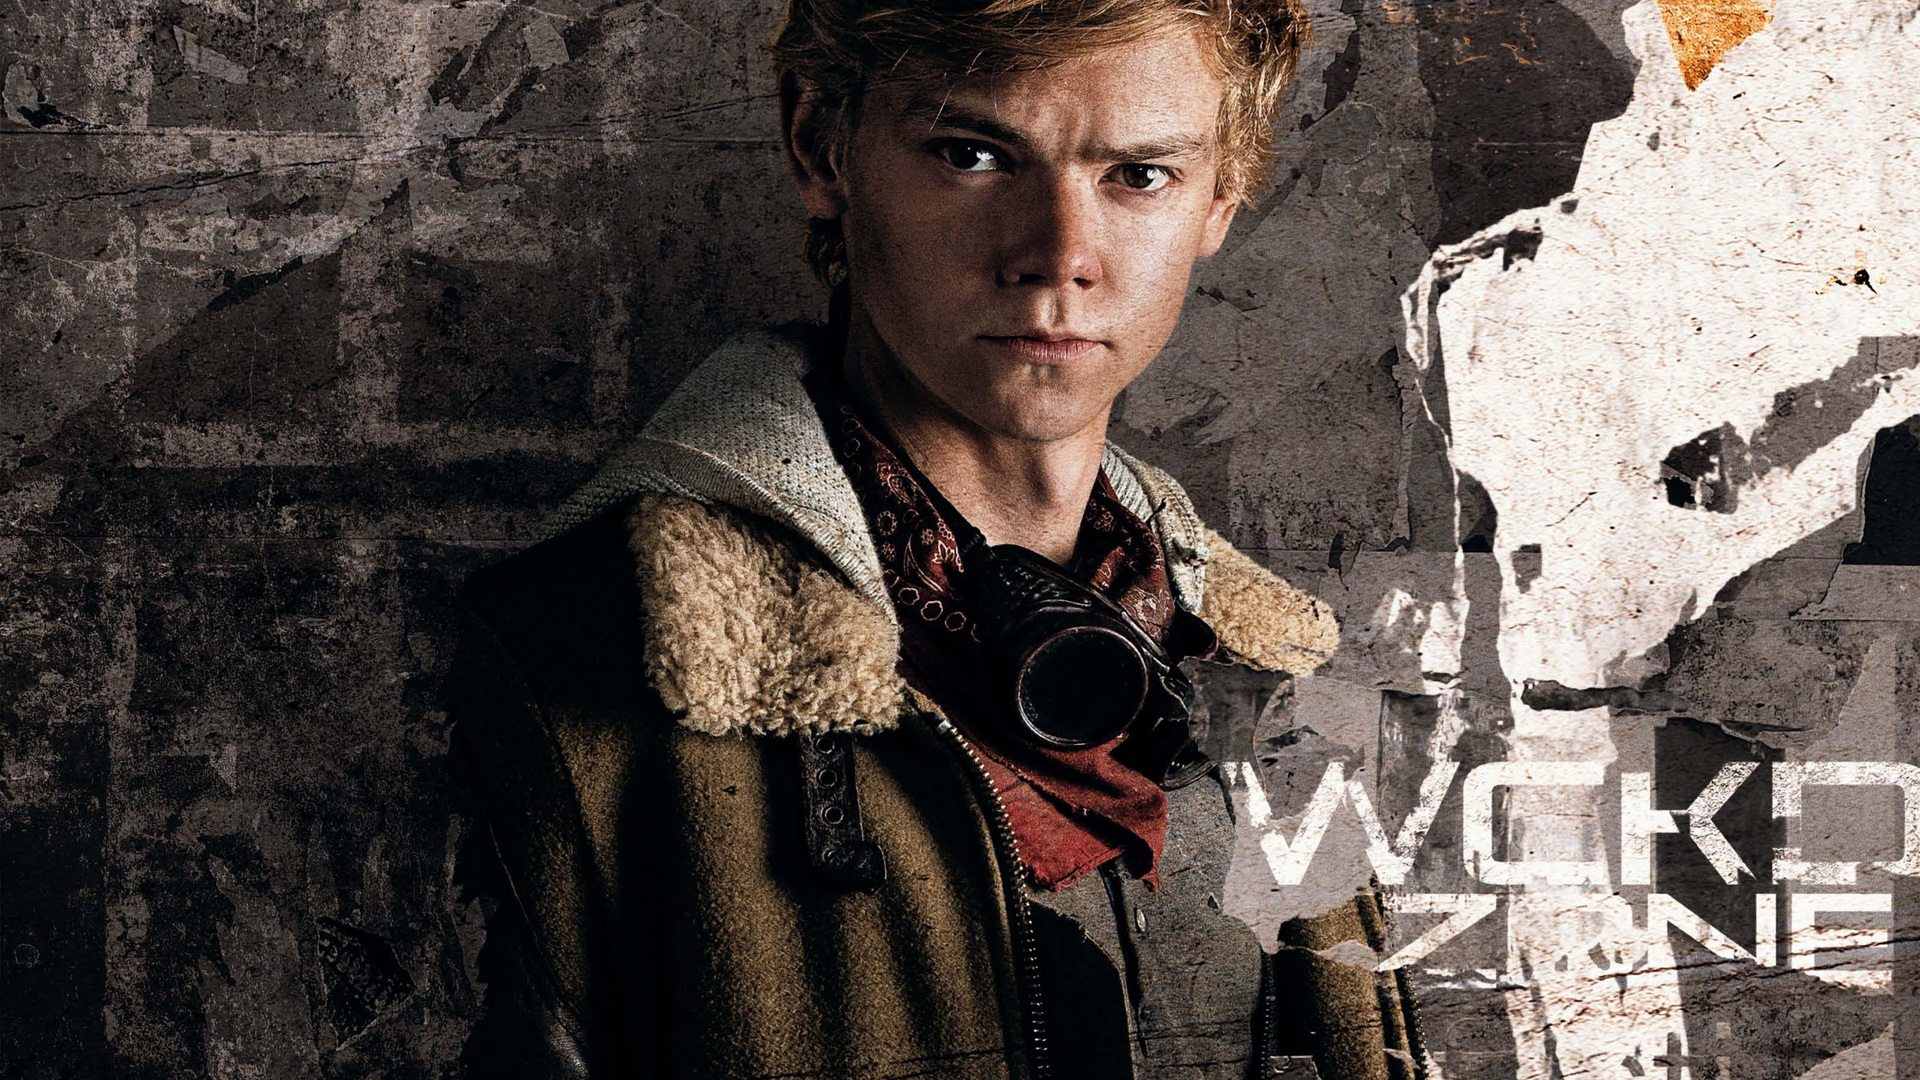 1920x1080 Thomas Brodie Sangster In Maze Runner The Death Cure 2018